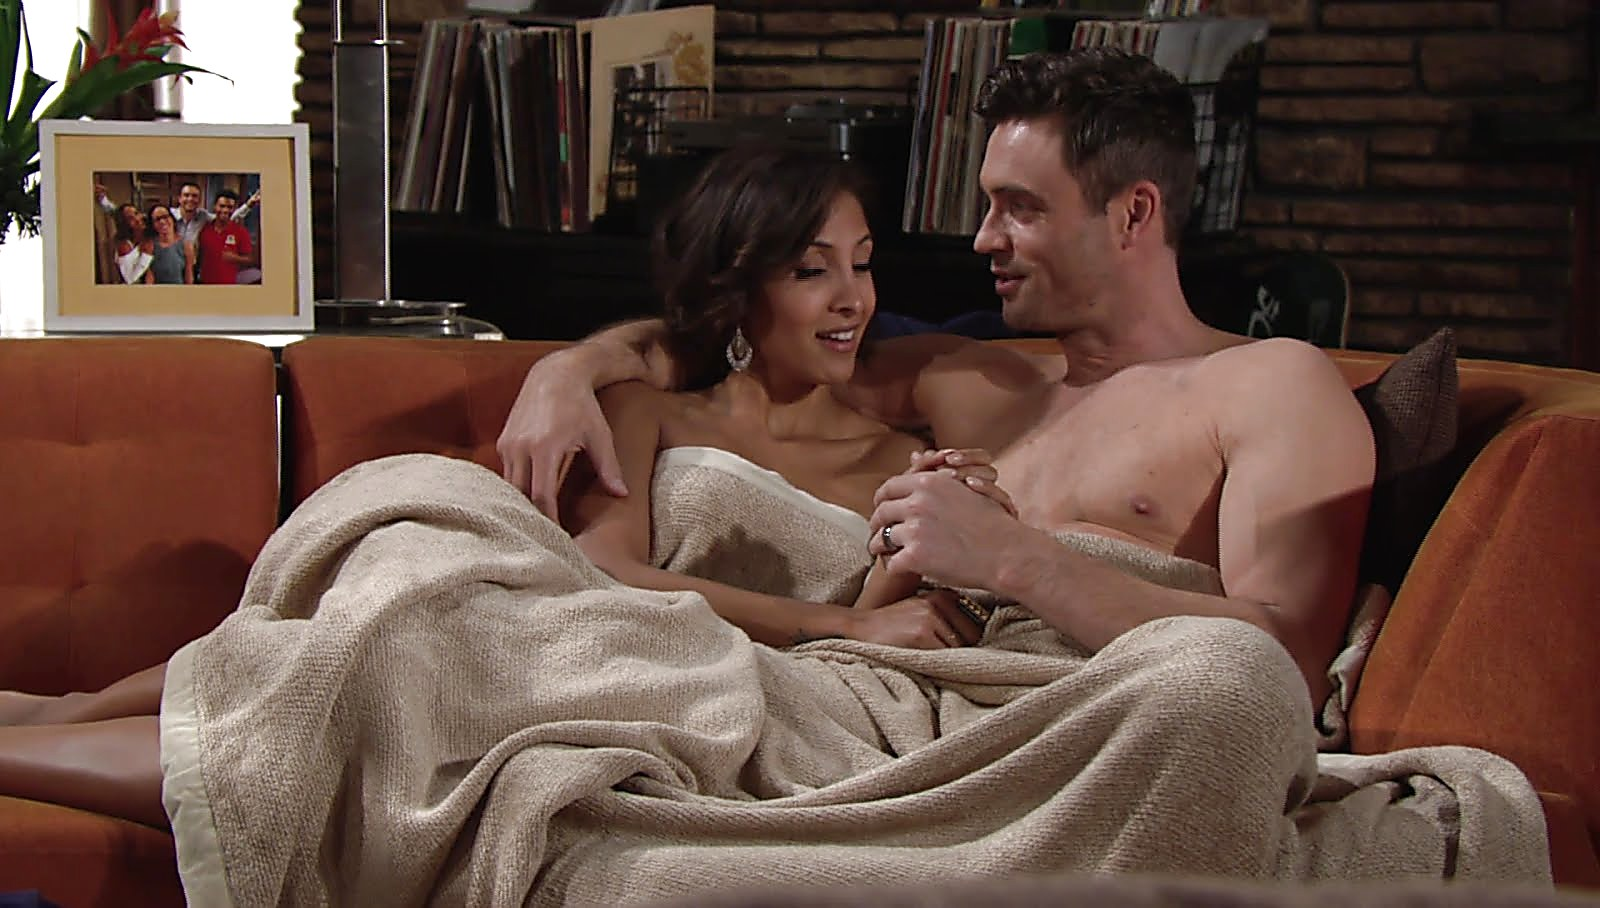 Daniel Goddard sexy shirtless scene March 15, 2018, 12pm